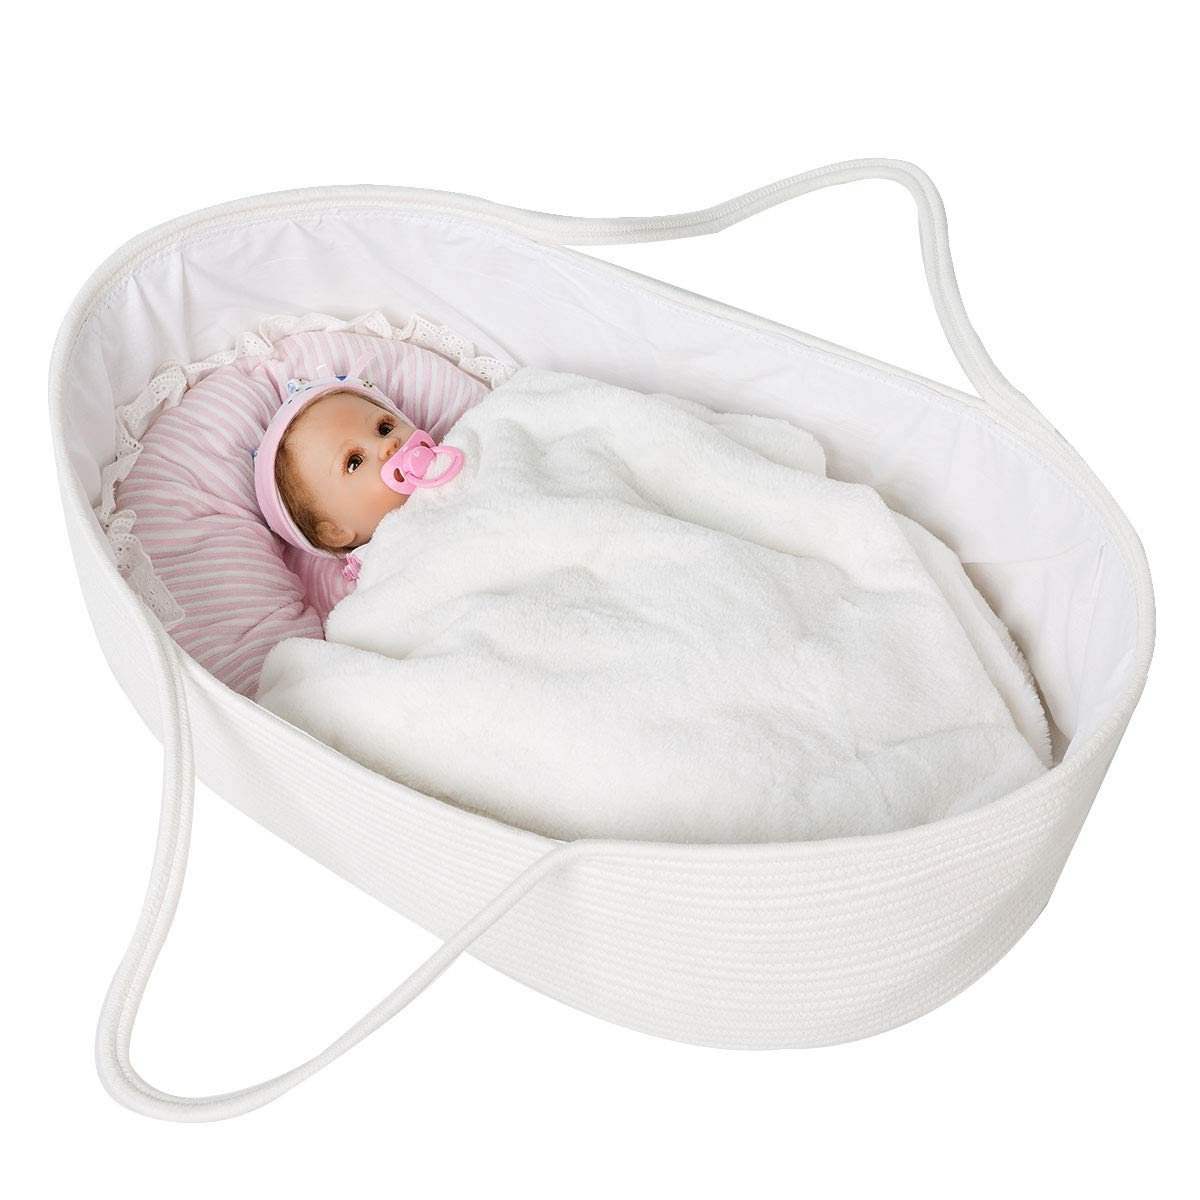 Goodpick Baby Moses Basket Soft Cotton Rope Basket for Newborn Baby - Nursery Cradle Bedding Basket - or Toys Basket Baby Laundry Blanket Basket with Cotton Lining and Handles, 25.6L x 14.6W x 7.9H